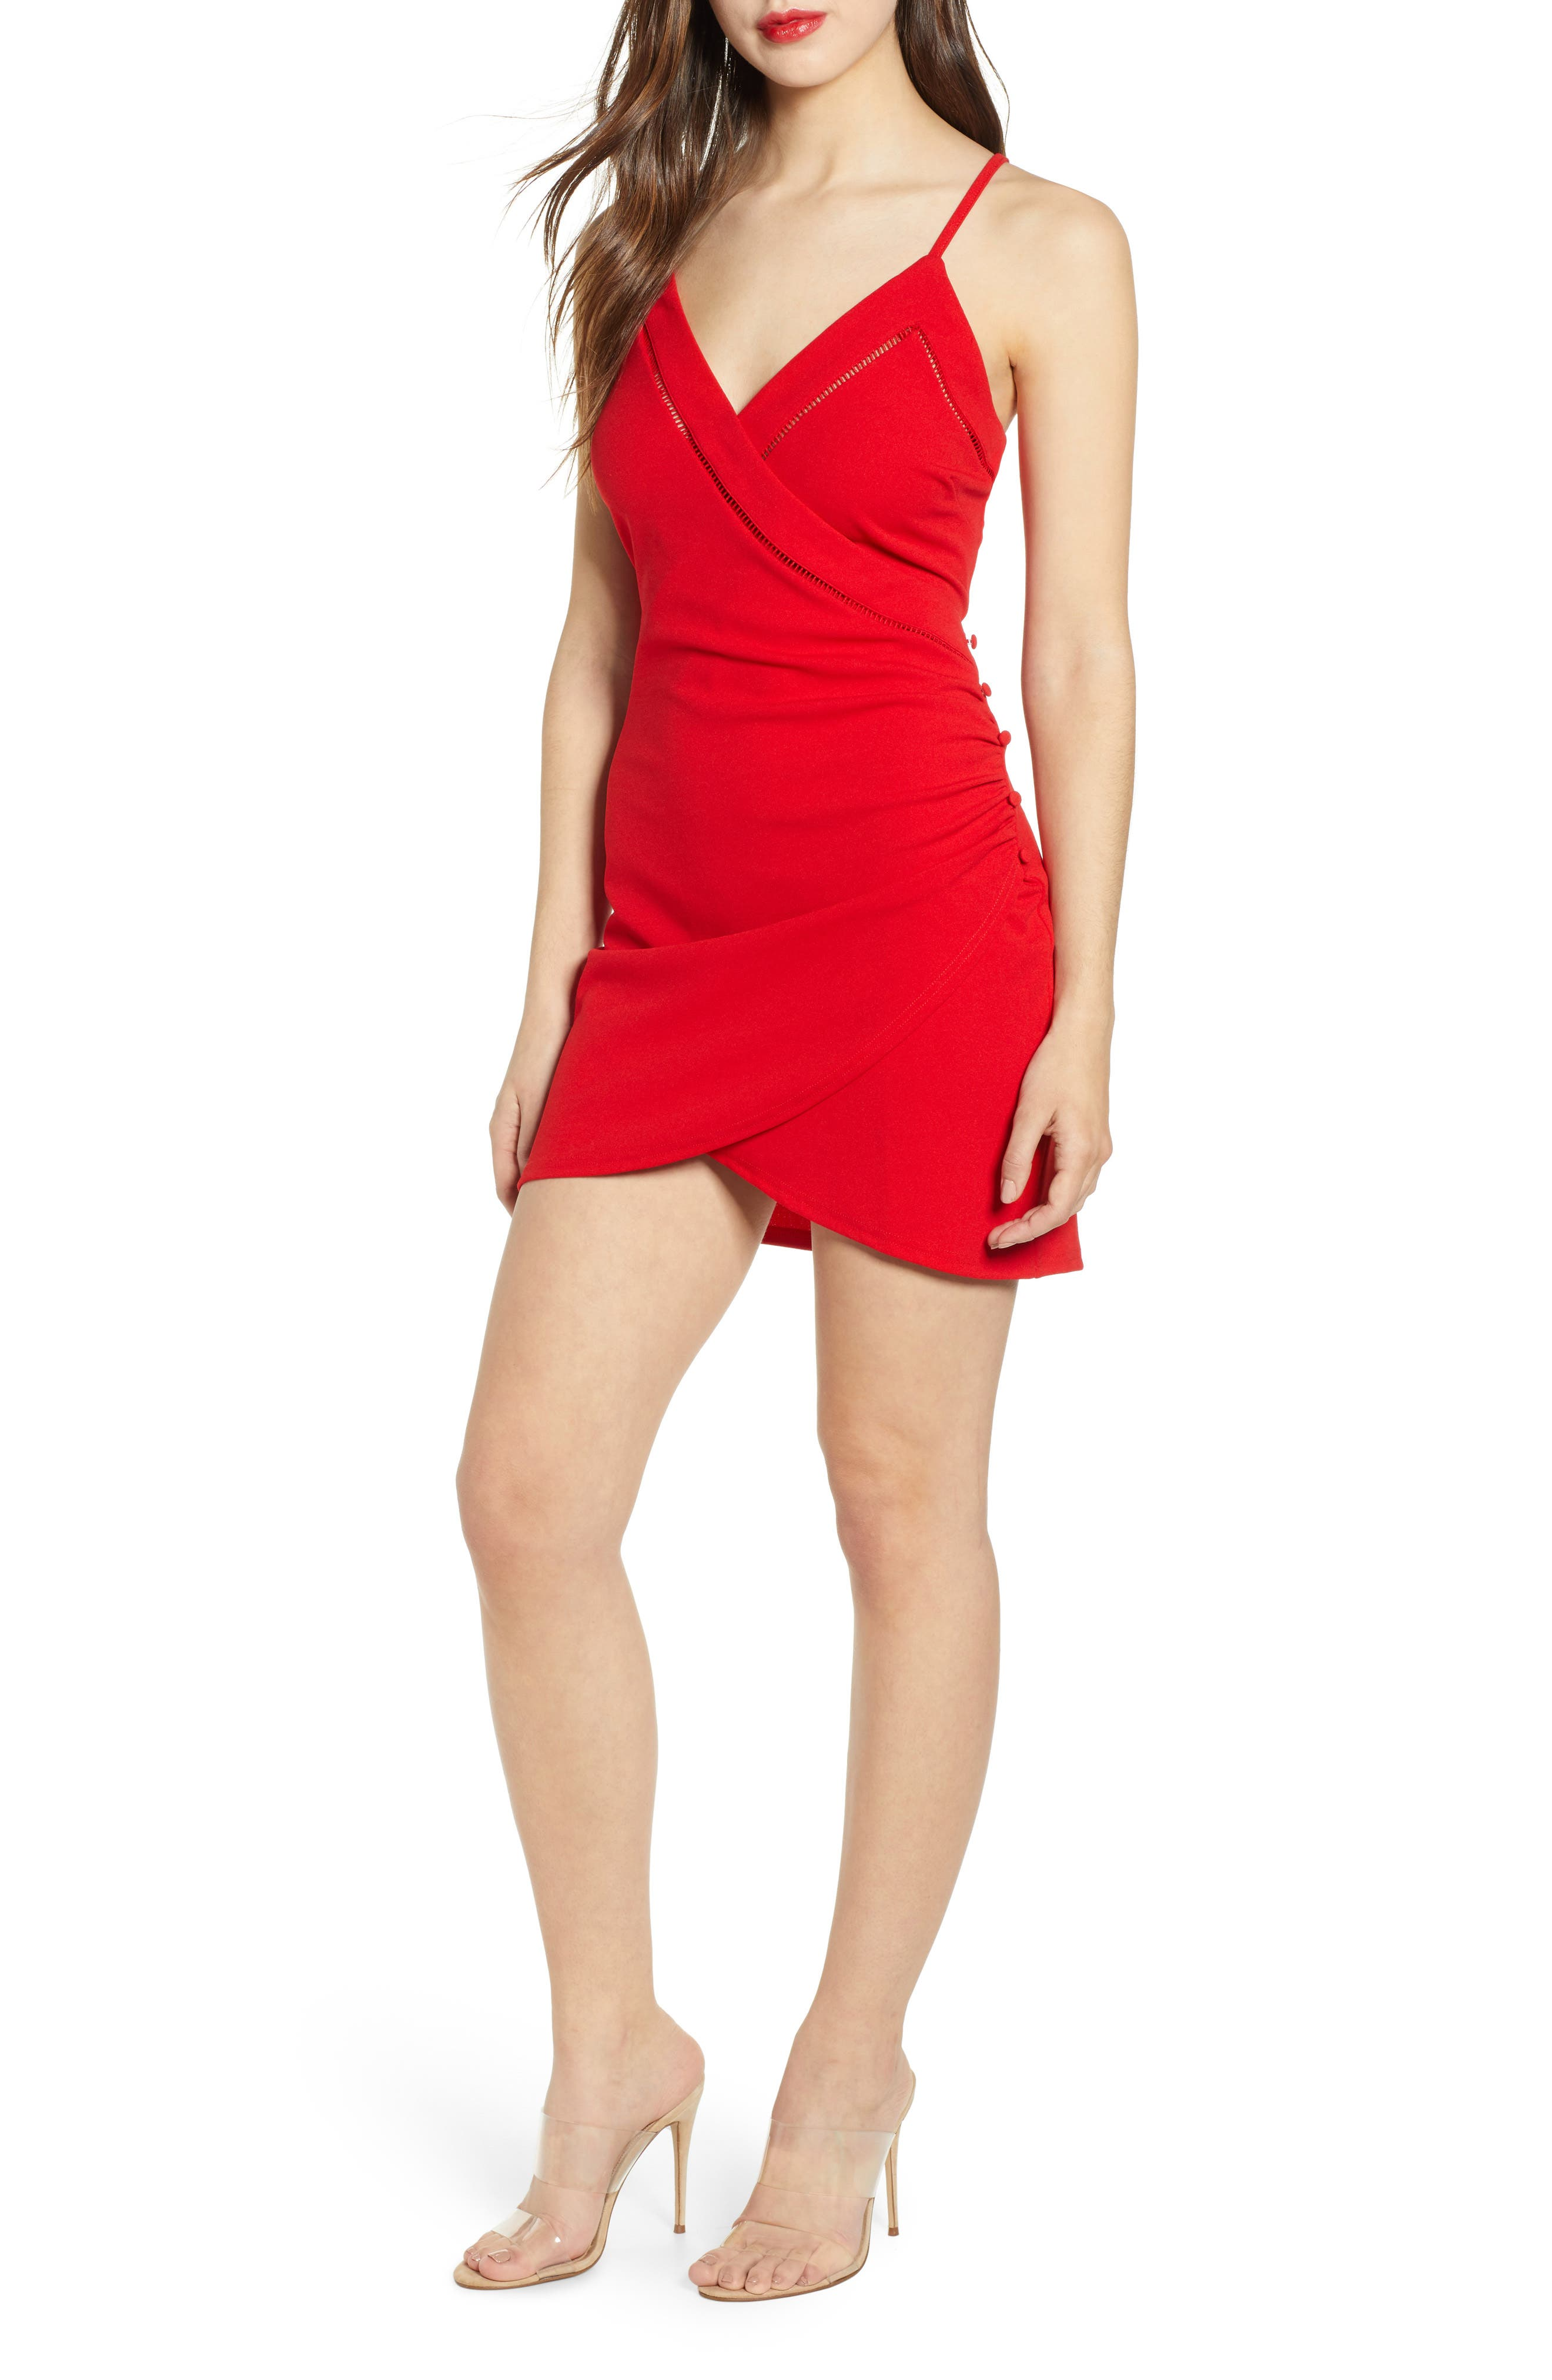 J.o.a. Wrap Minidress, Red